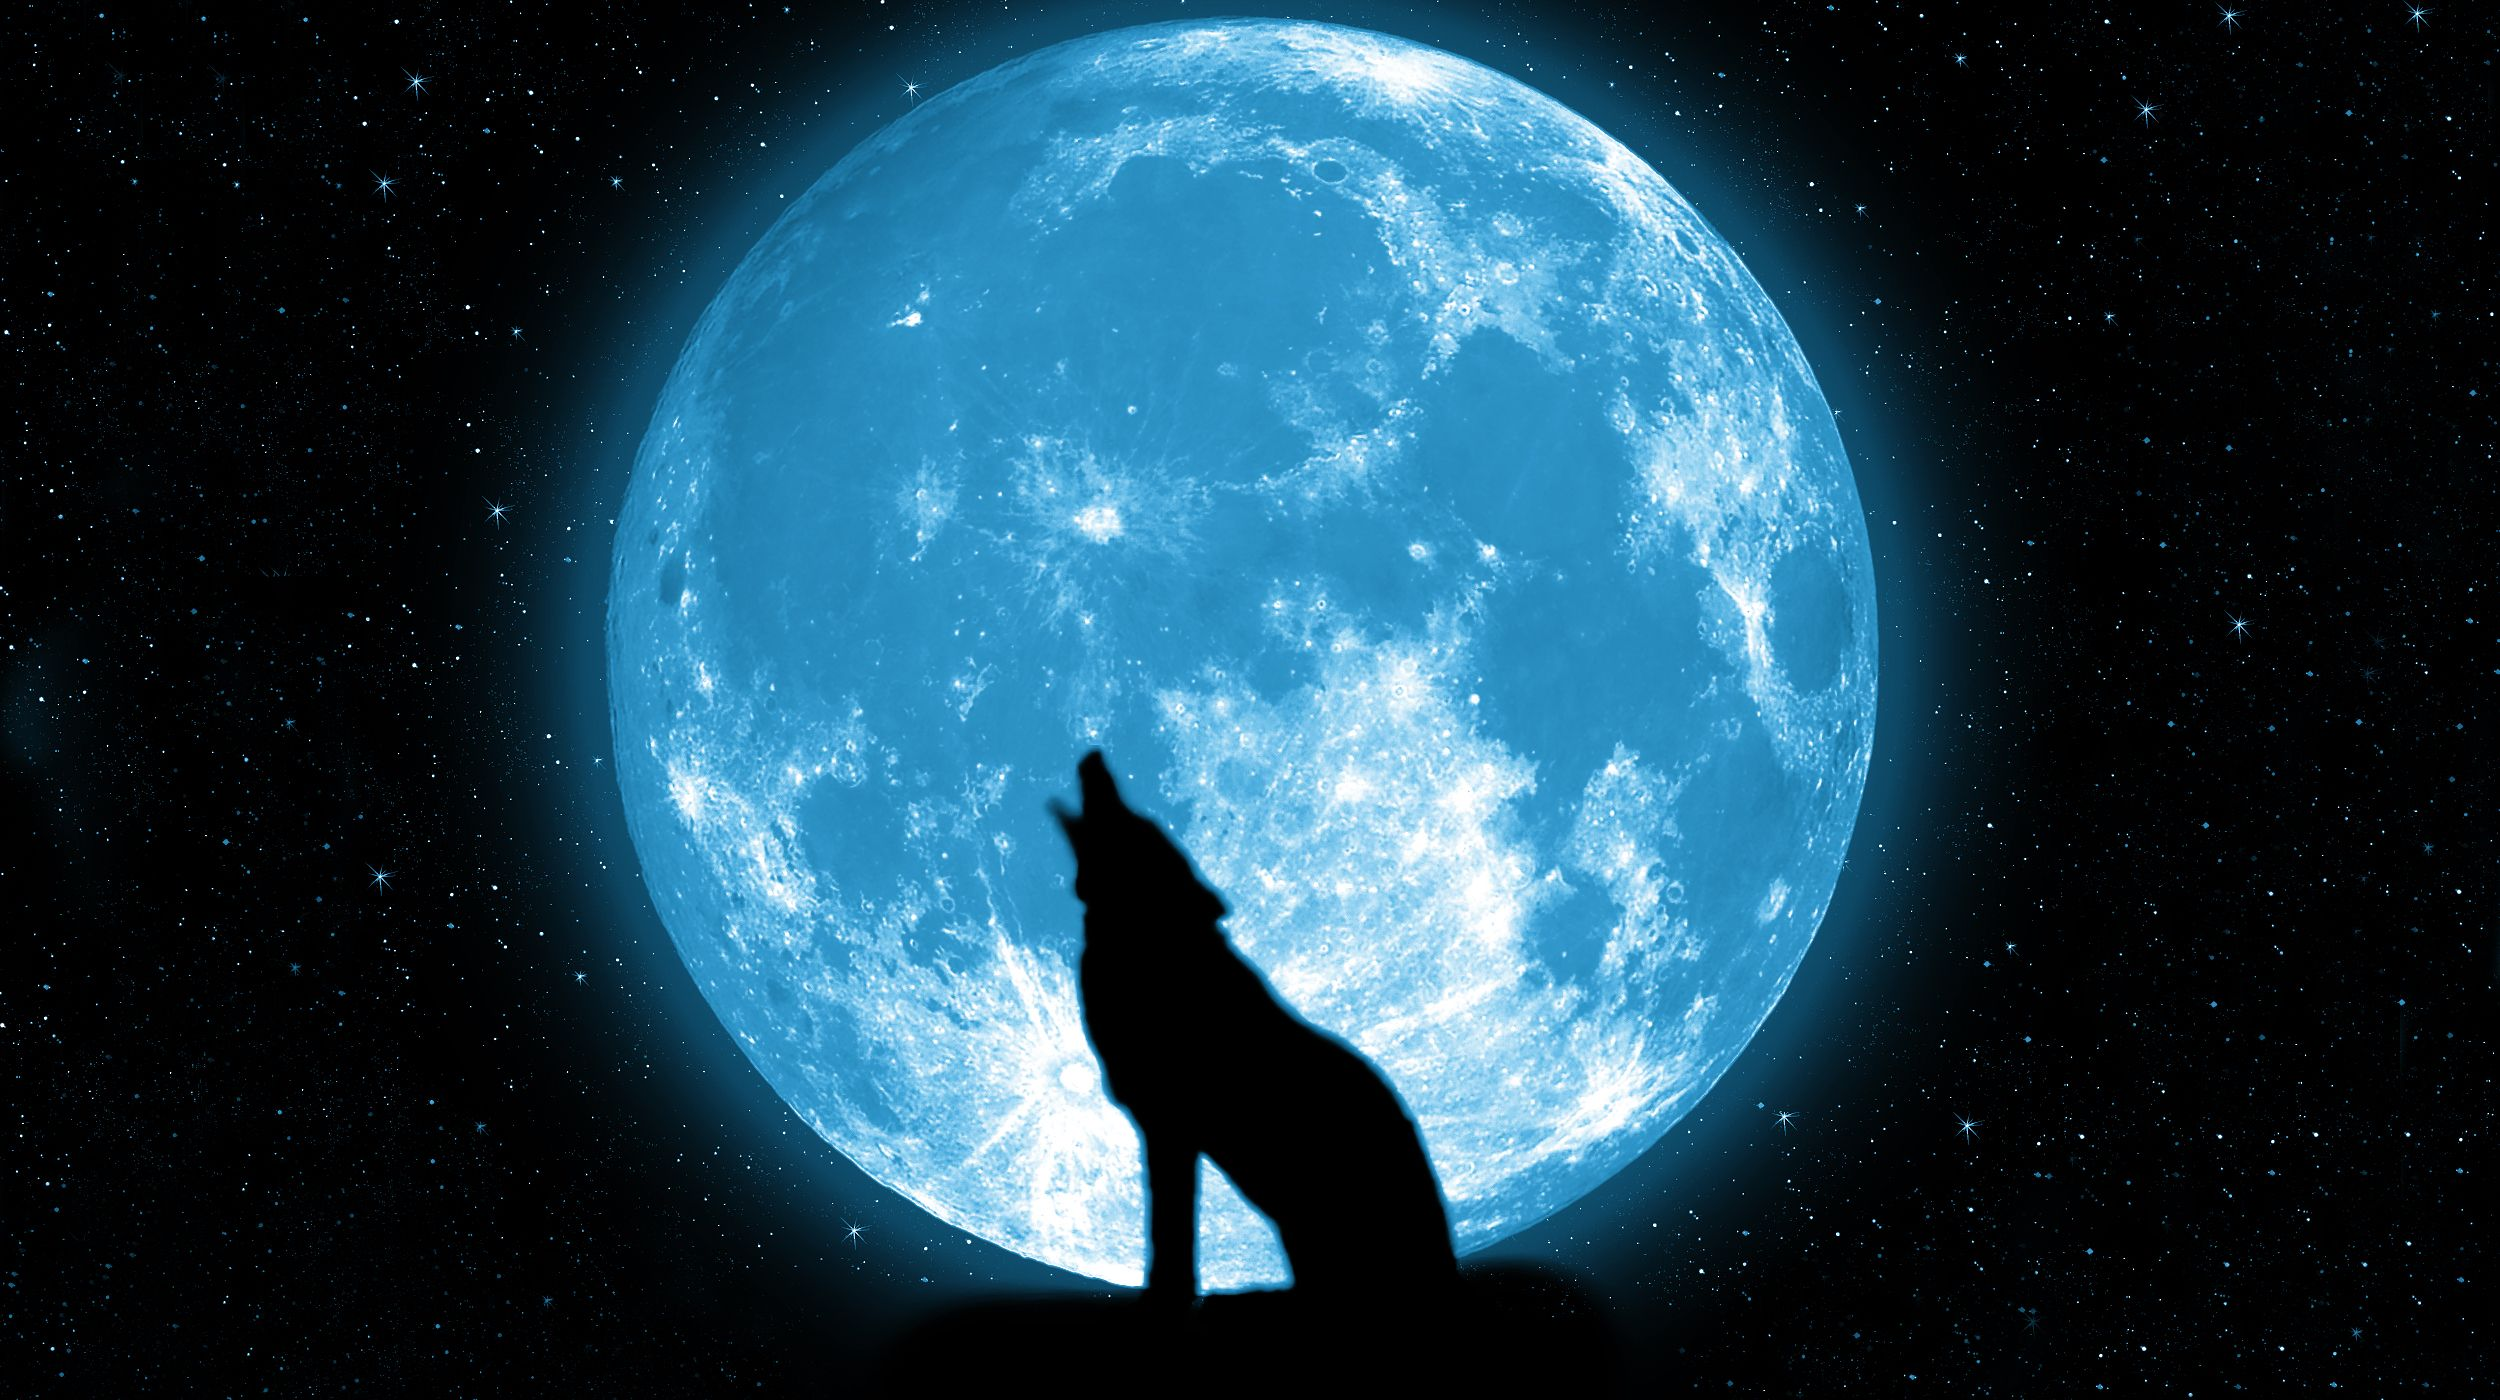 Wolf And Ful Moon Wallpaper Wolf Wallpaper Moon Artwork Black And Blue Wallpaper